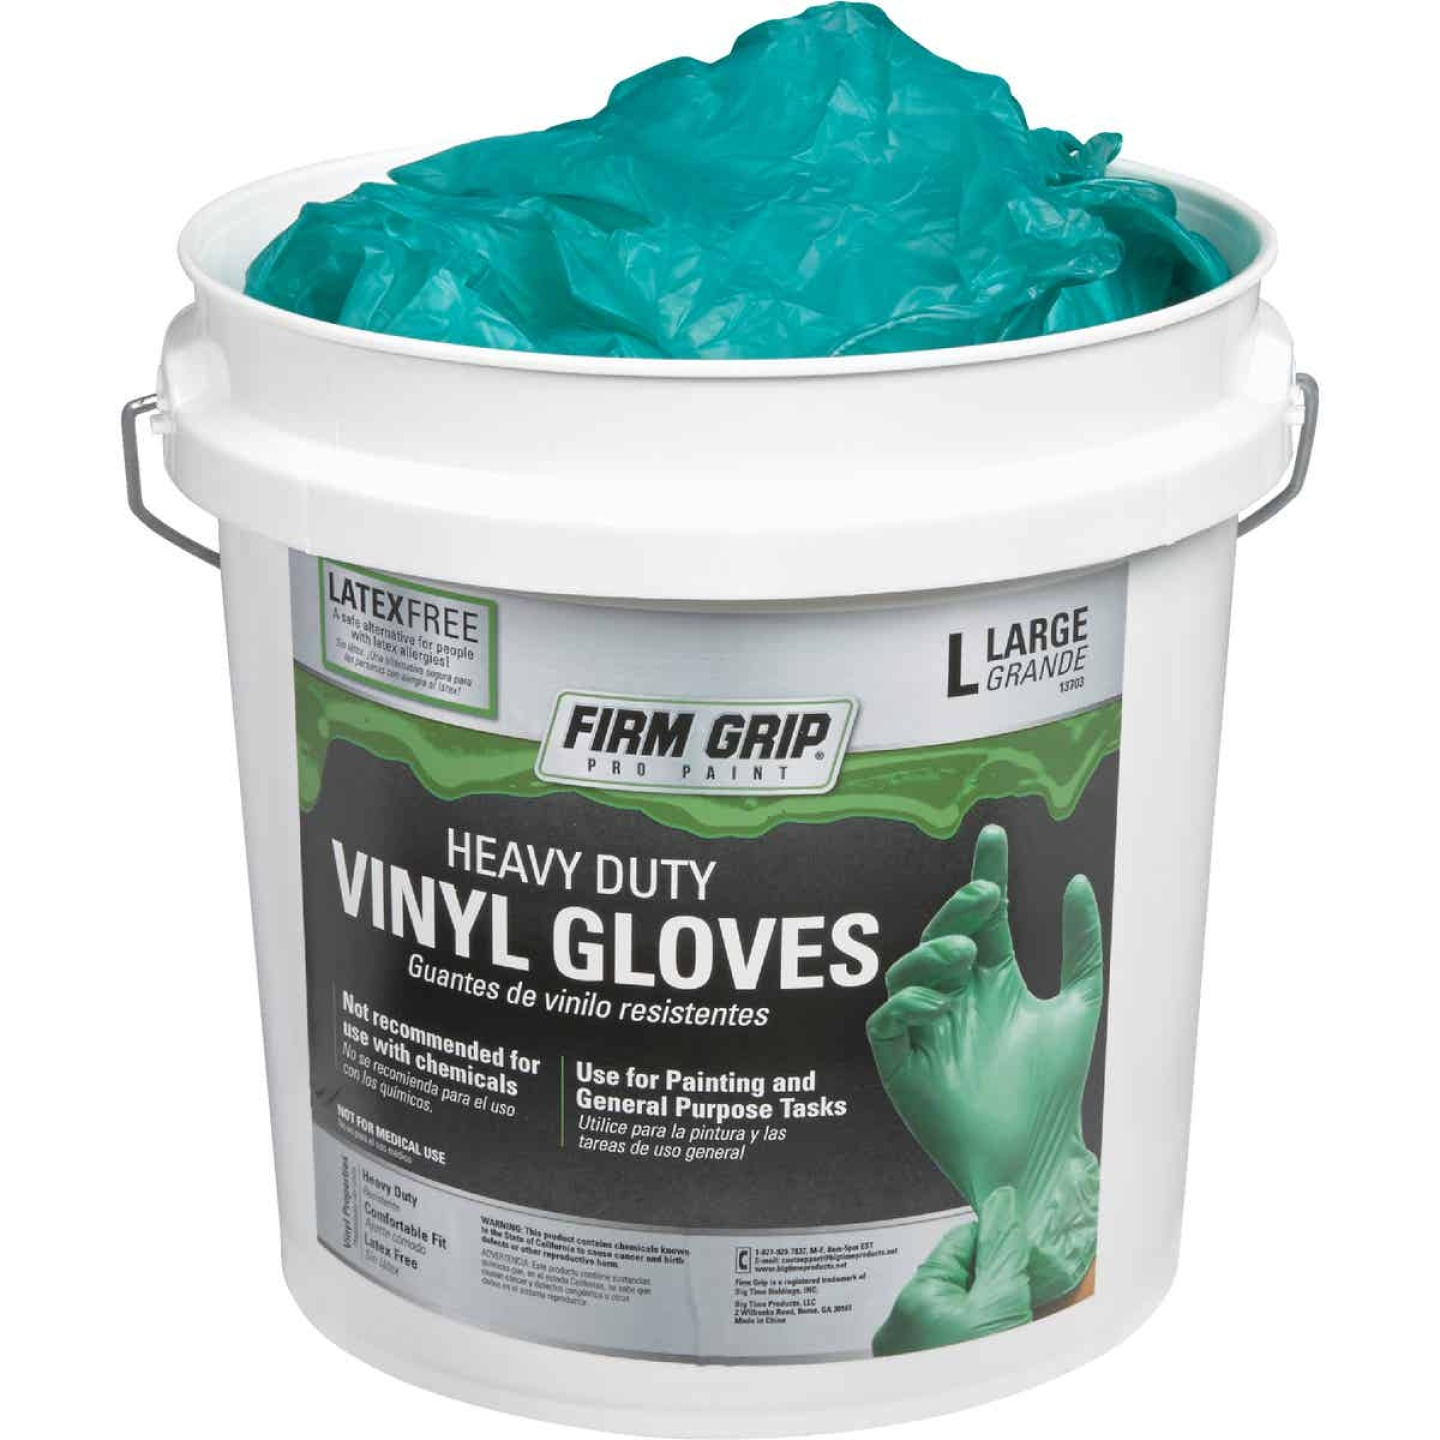 Firm Grip Large Heavy-Duty Vinyl Disposable Glove (300-Pack) Image 1